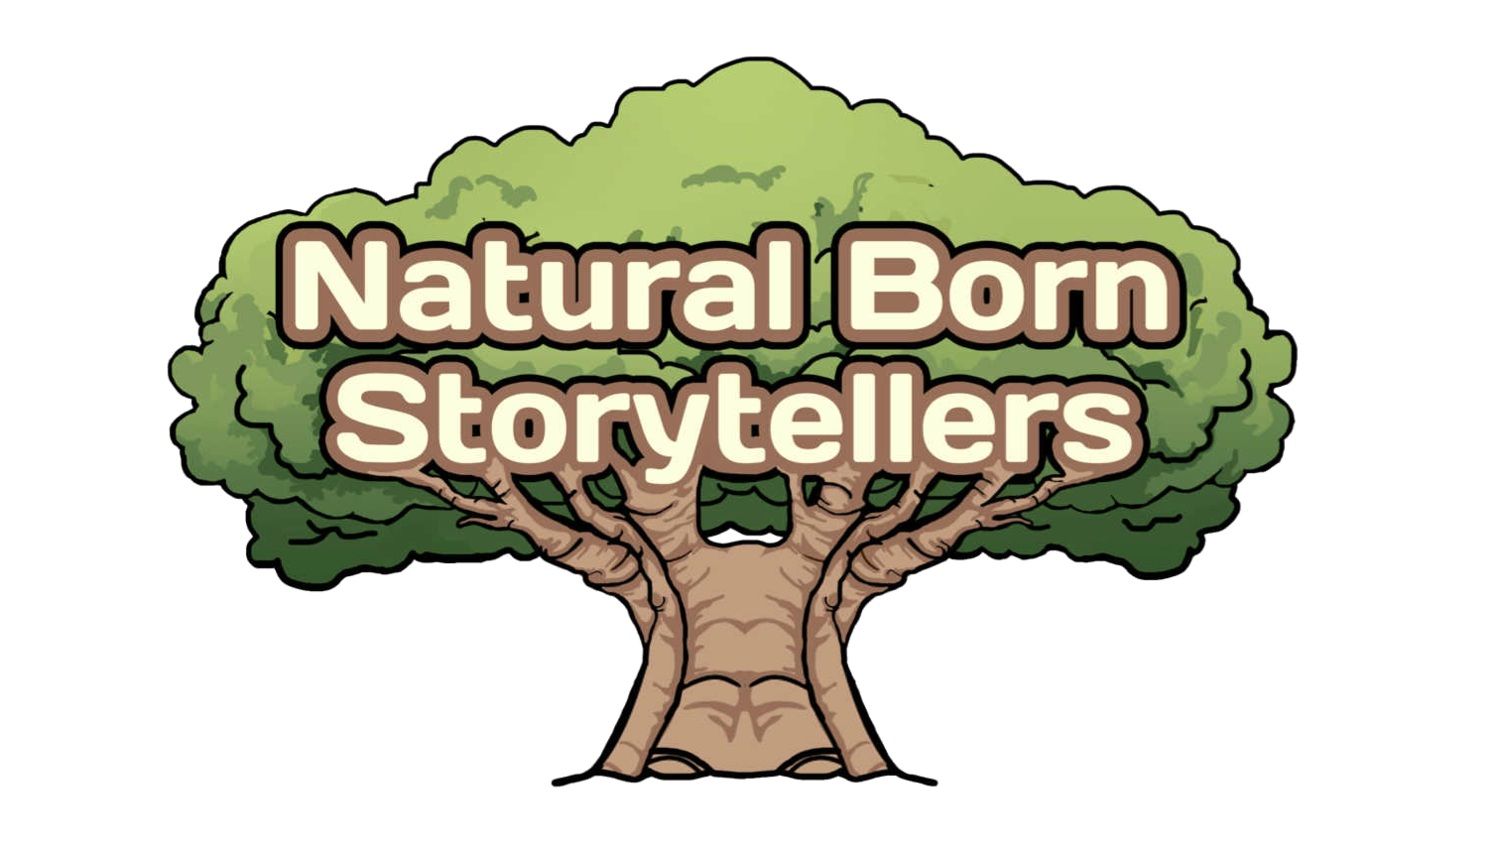 Natural Born Storytellers | A Fun, Supportive & Welcoming Space to Share True Stories | Workshops | Podcasts | Live